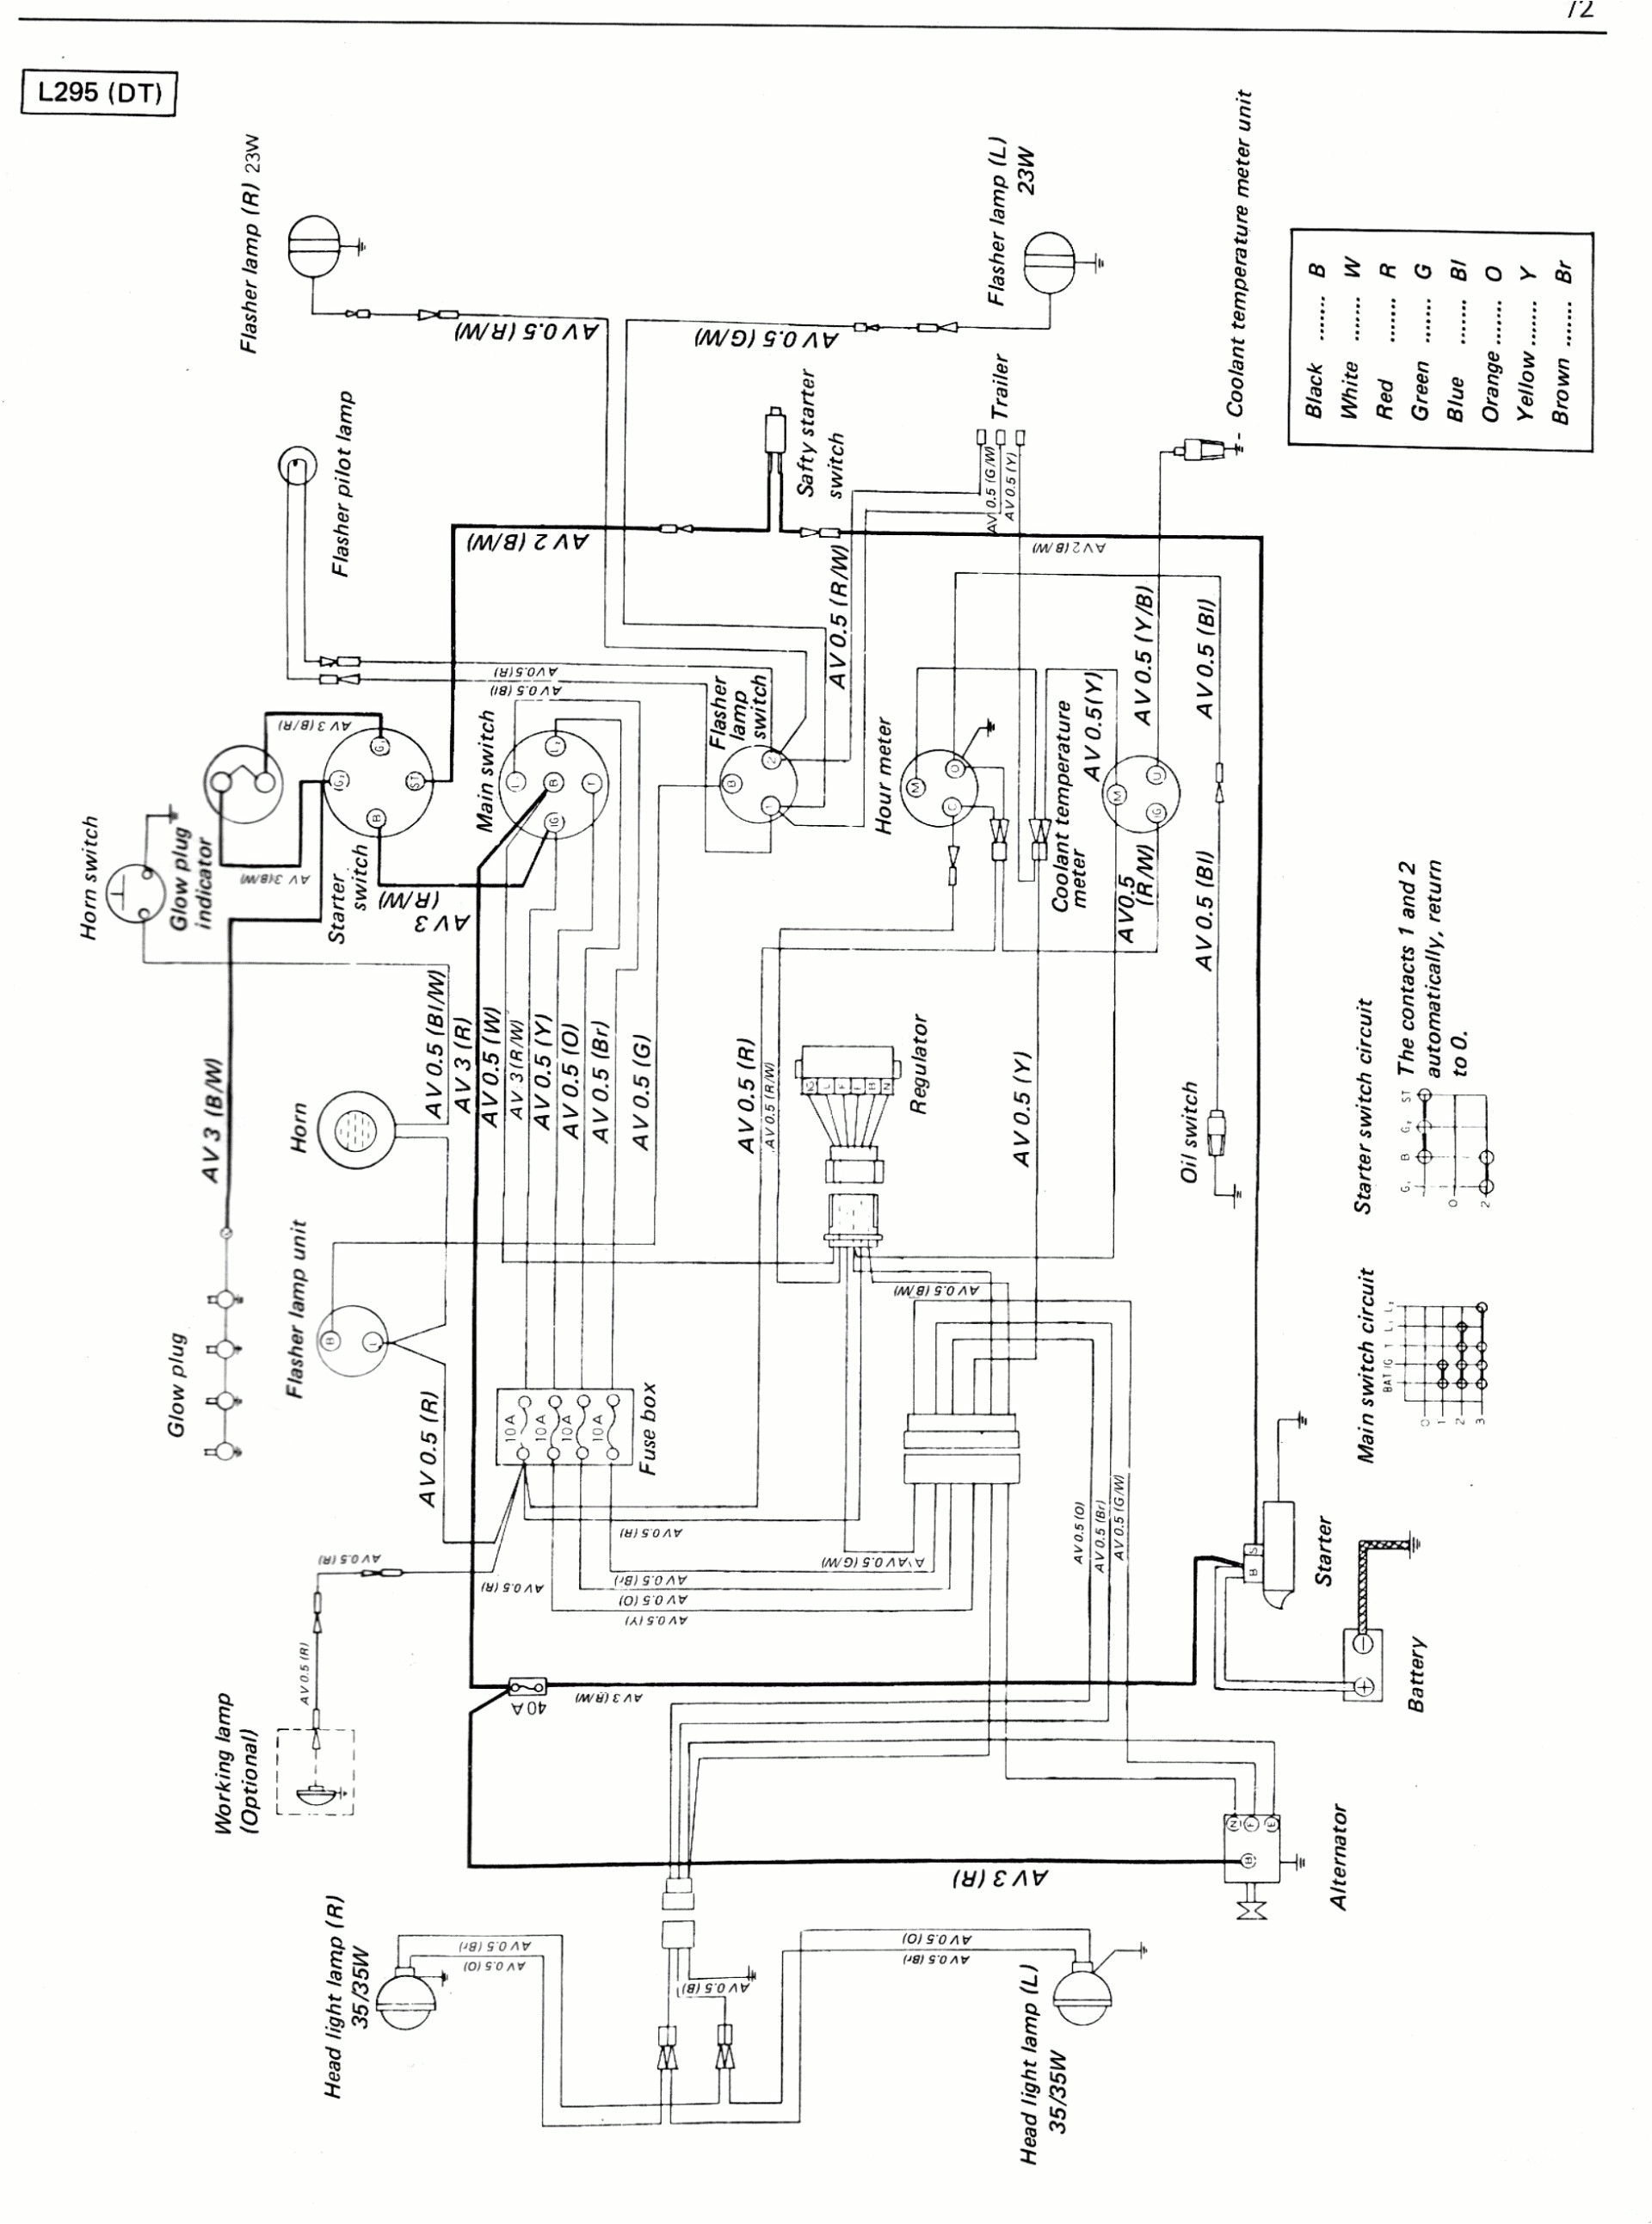 kubota l3400 hst wiring diagram wiring diagram sheetkubota l3400 wiring diagram wiring diagram kubota l3400 hst